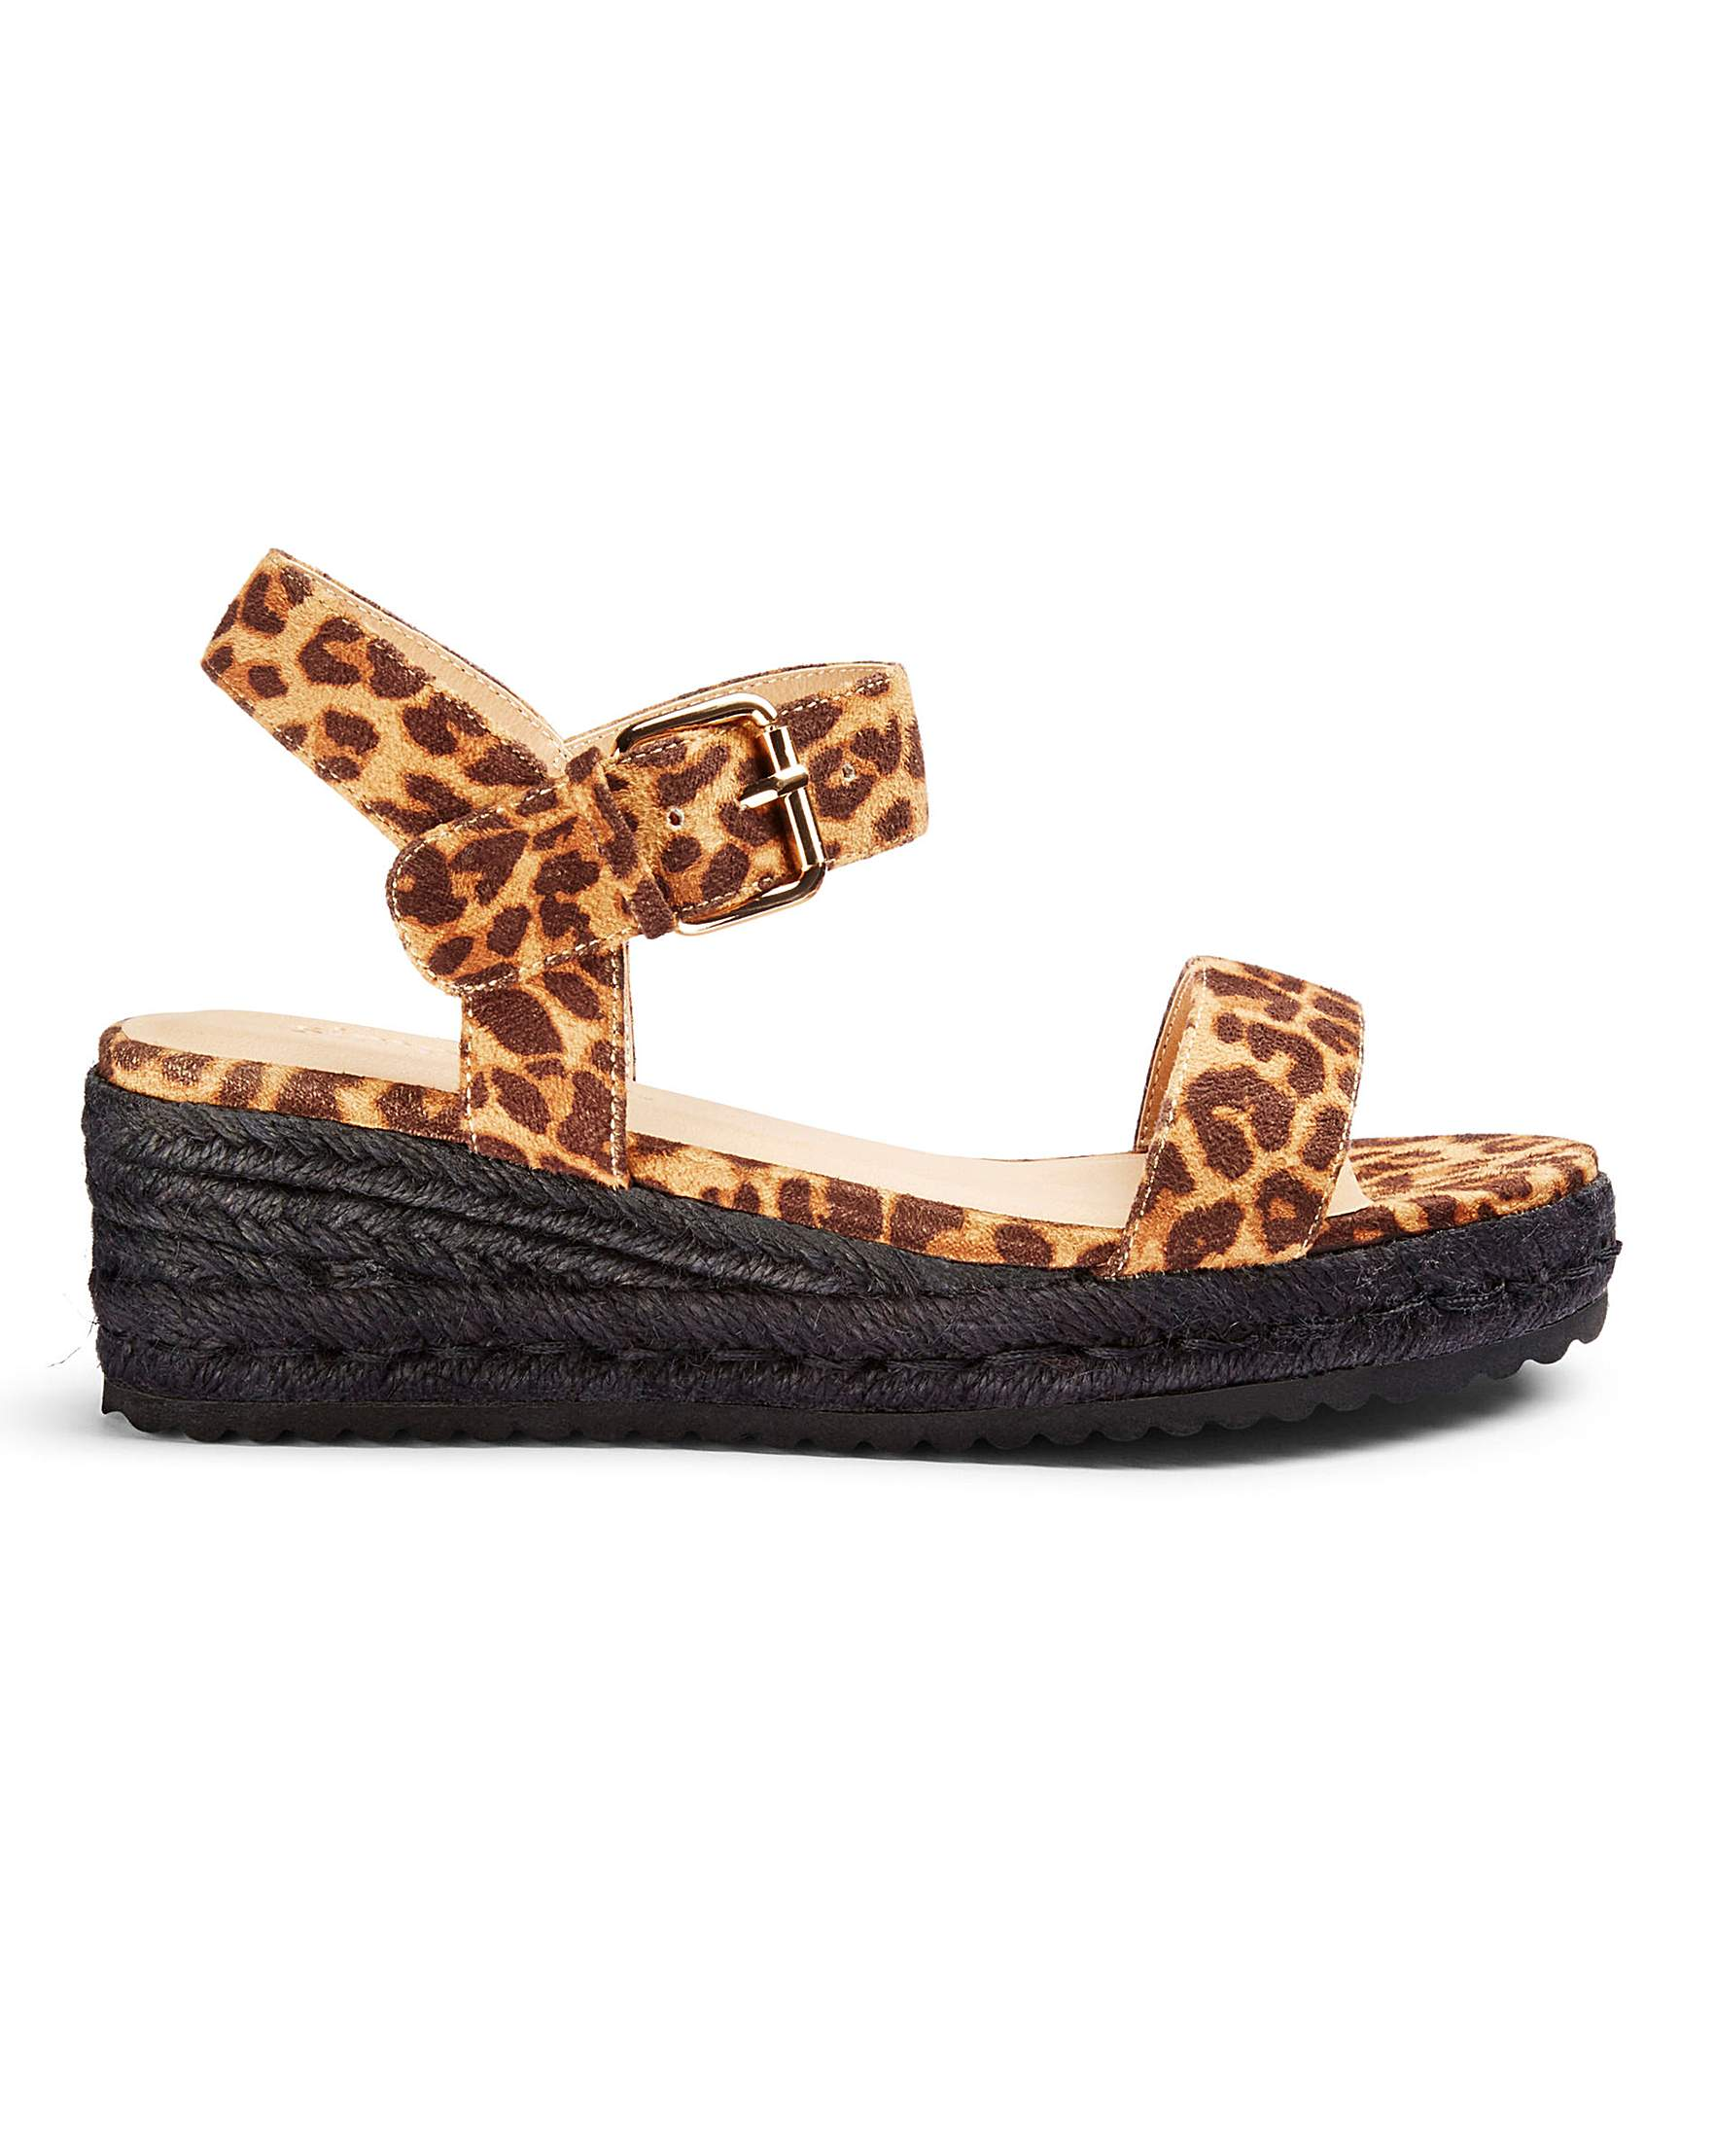 772c289d4 Indra Low Espadrille Wedge Extra Wide | Oxendales